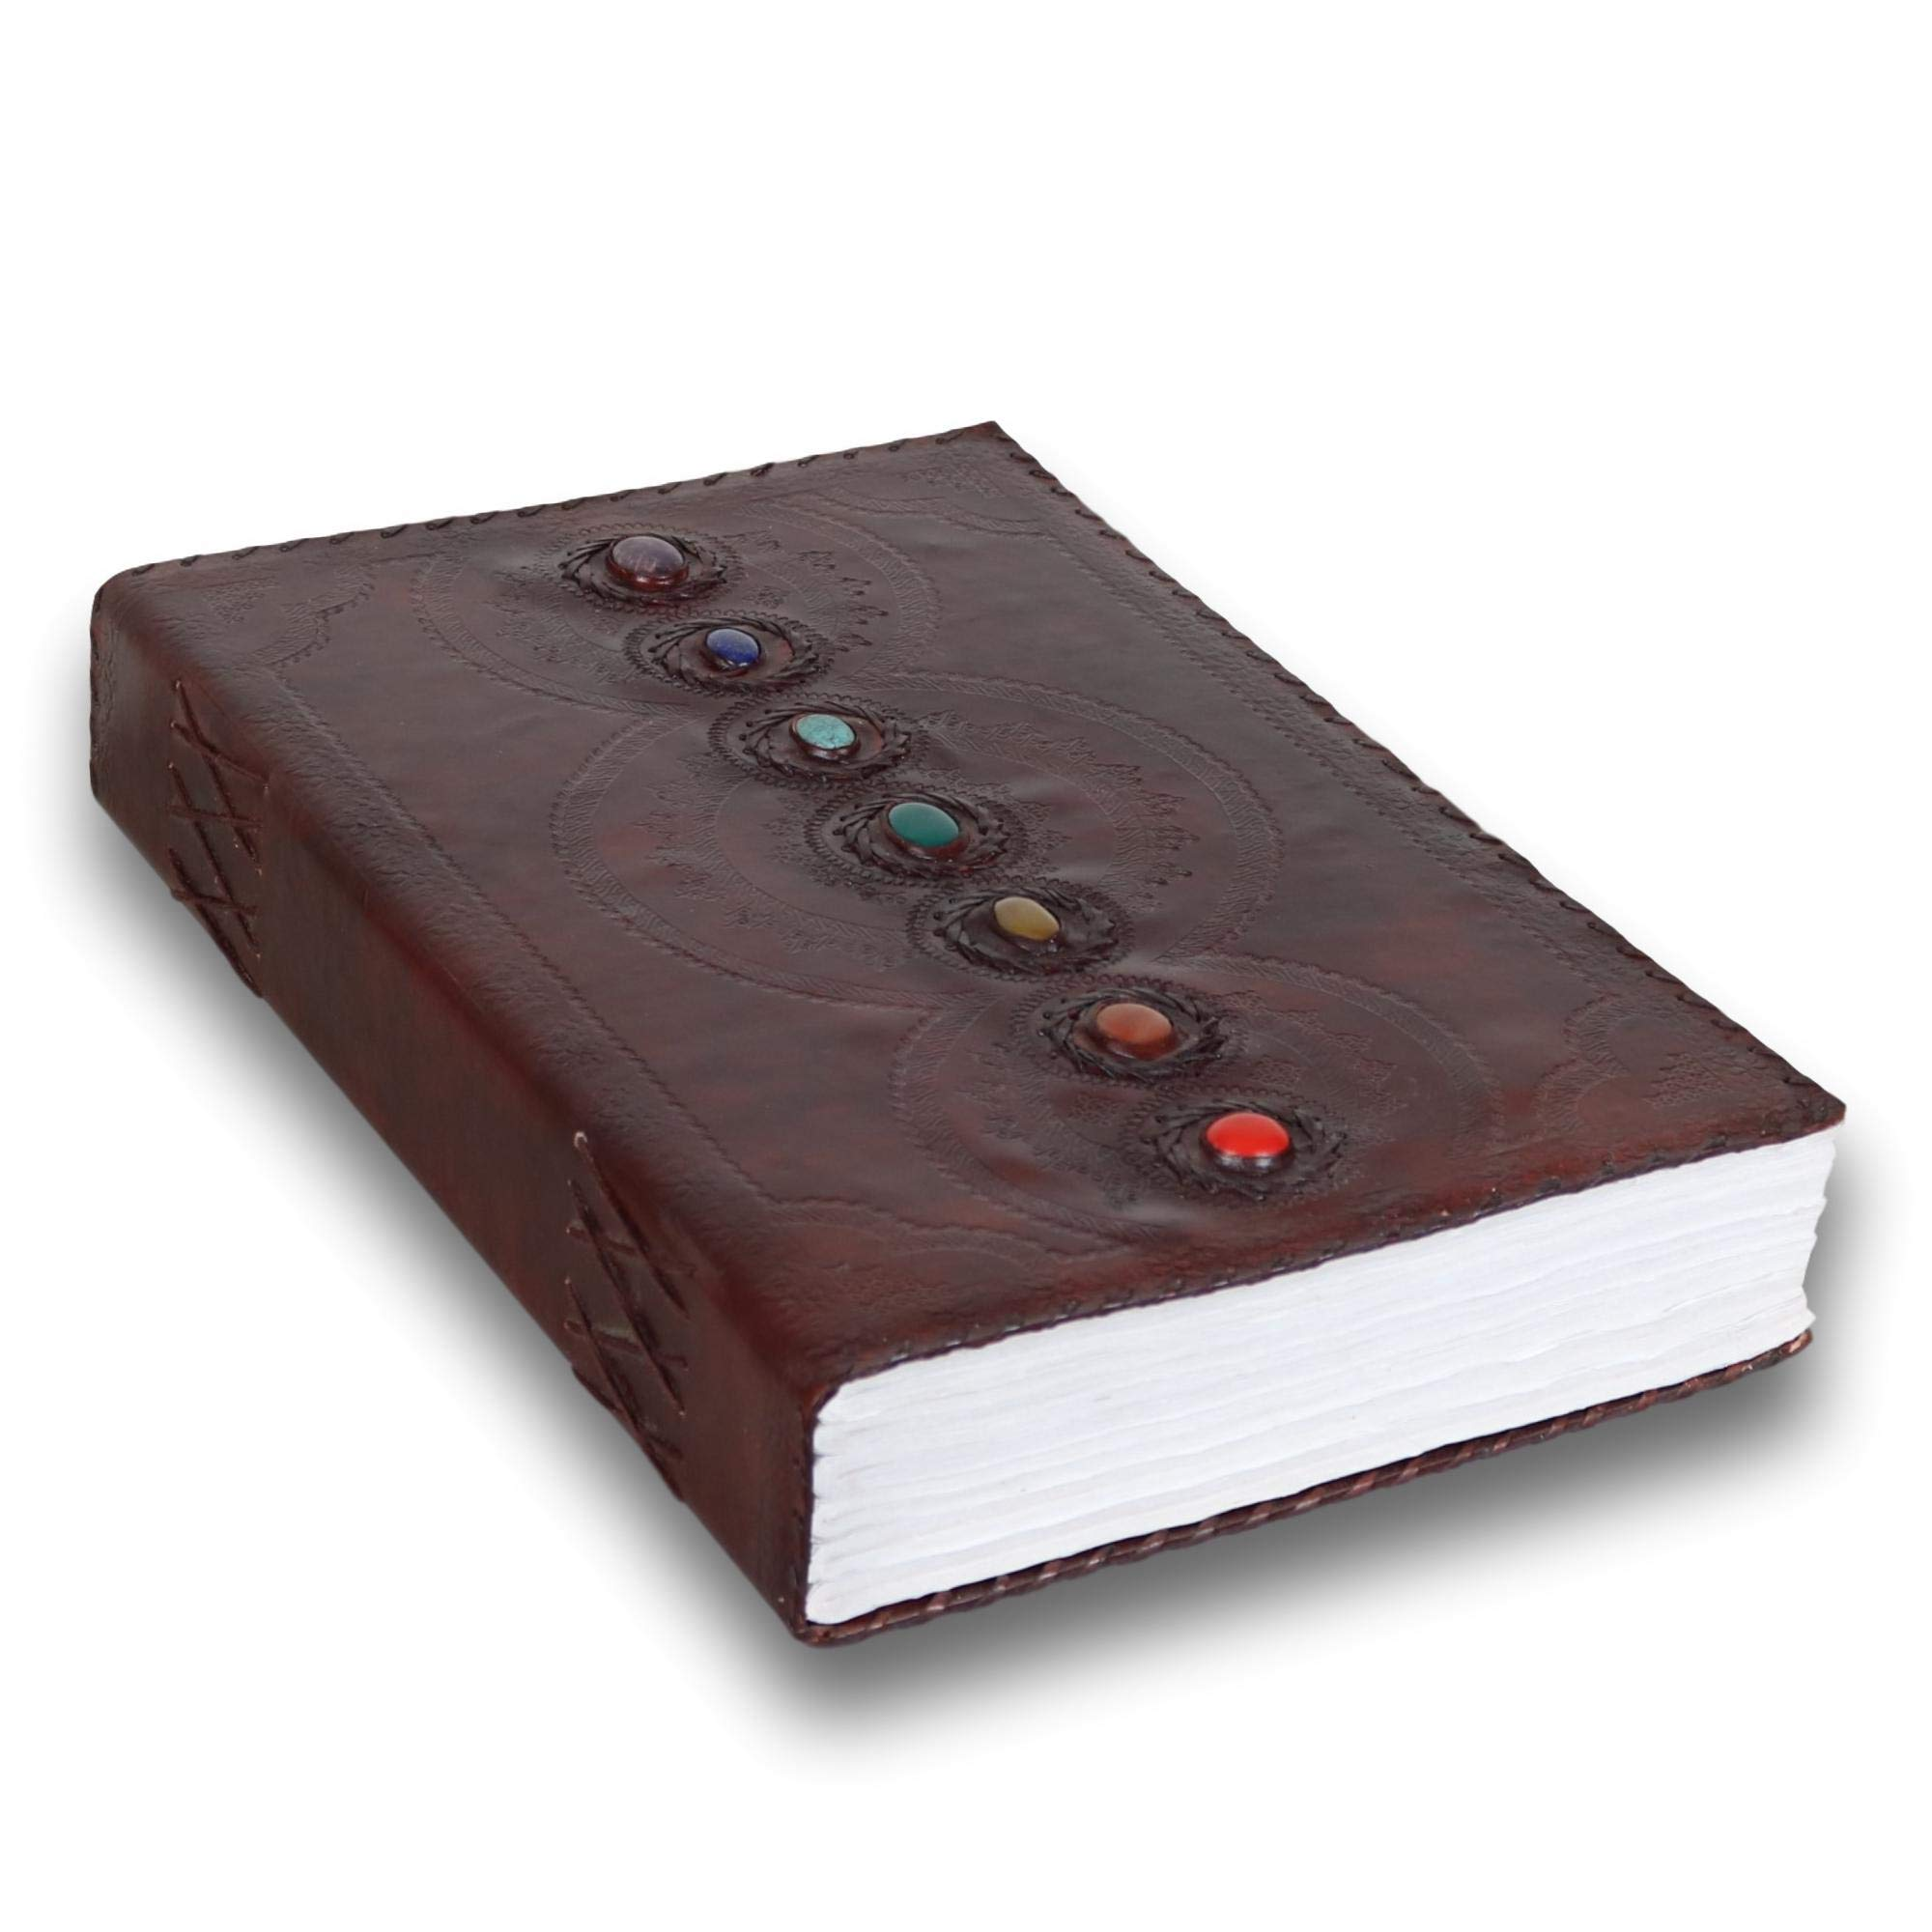 Seven Stone Leather Journal Handmade Notebook Unlined Blank 600 Pages 13 1/2 X 22 inches by  (Image #3)